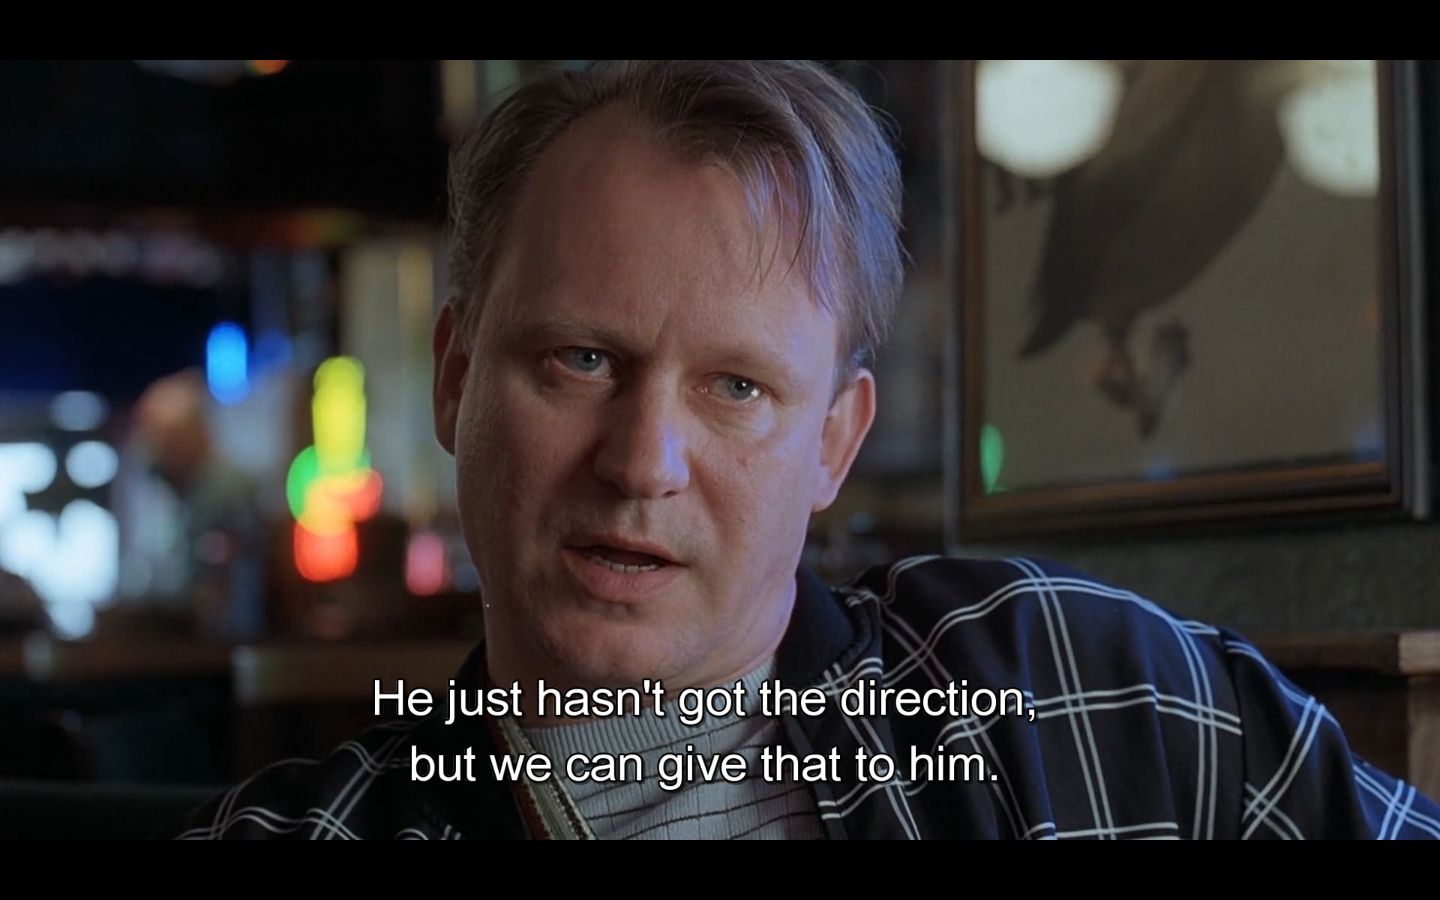 Post-Thoughts on Good Will Hunting